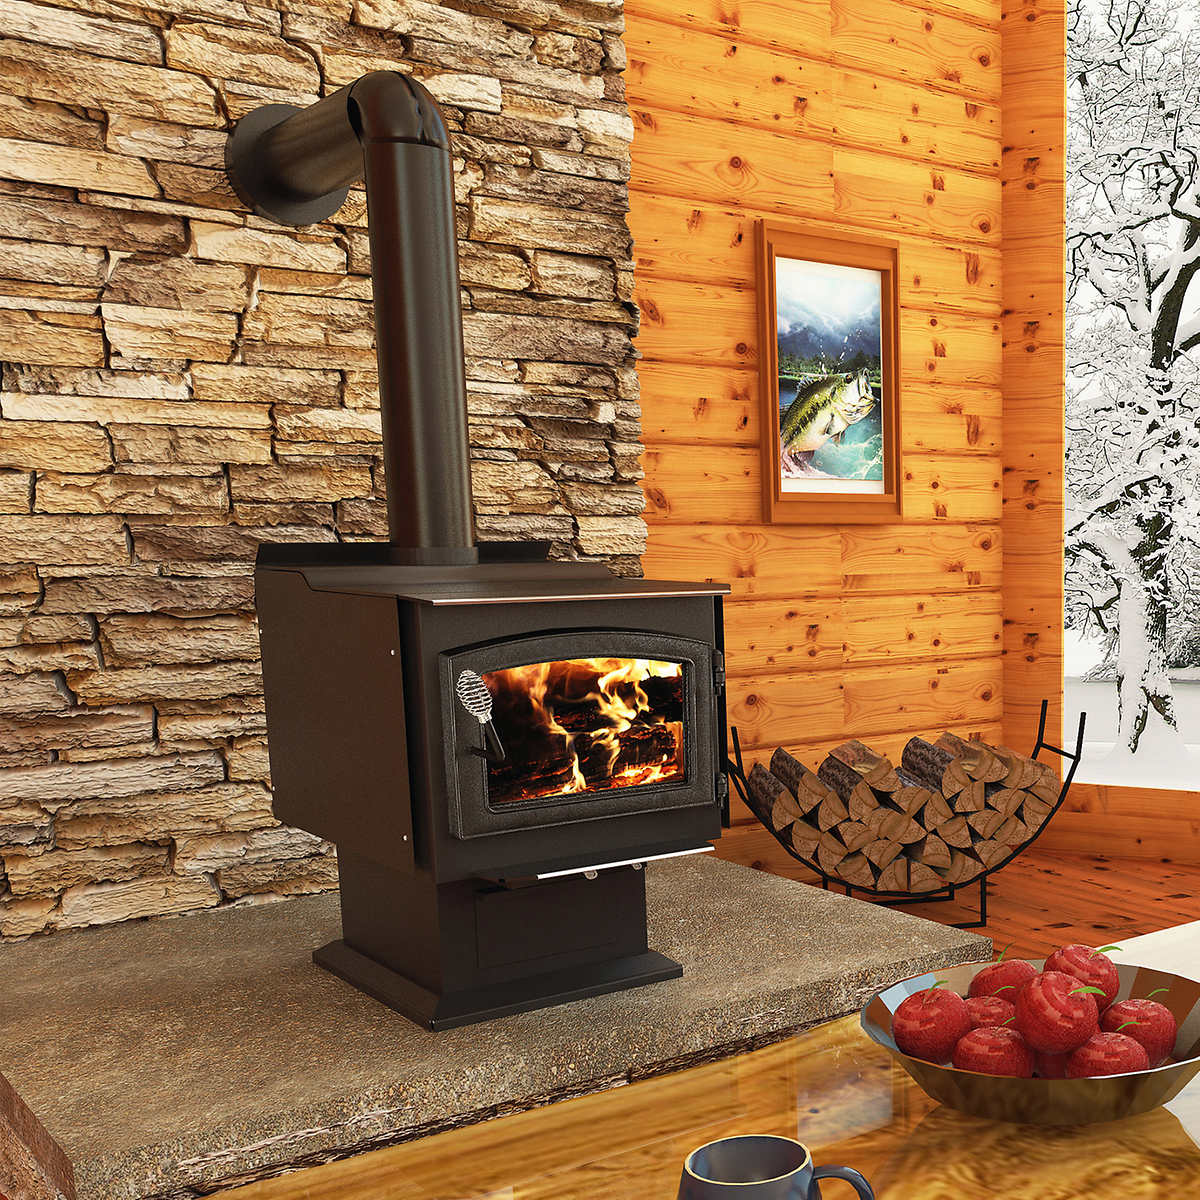 pleasant hearth small wood stove with blower